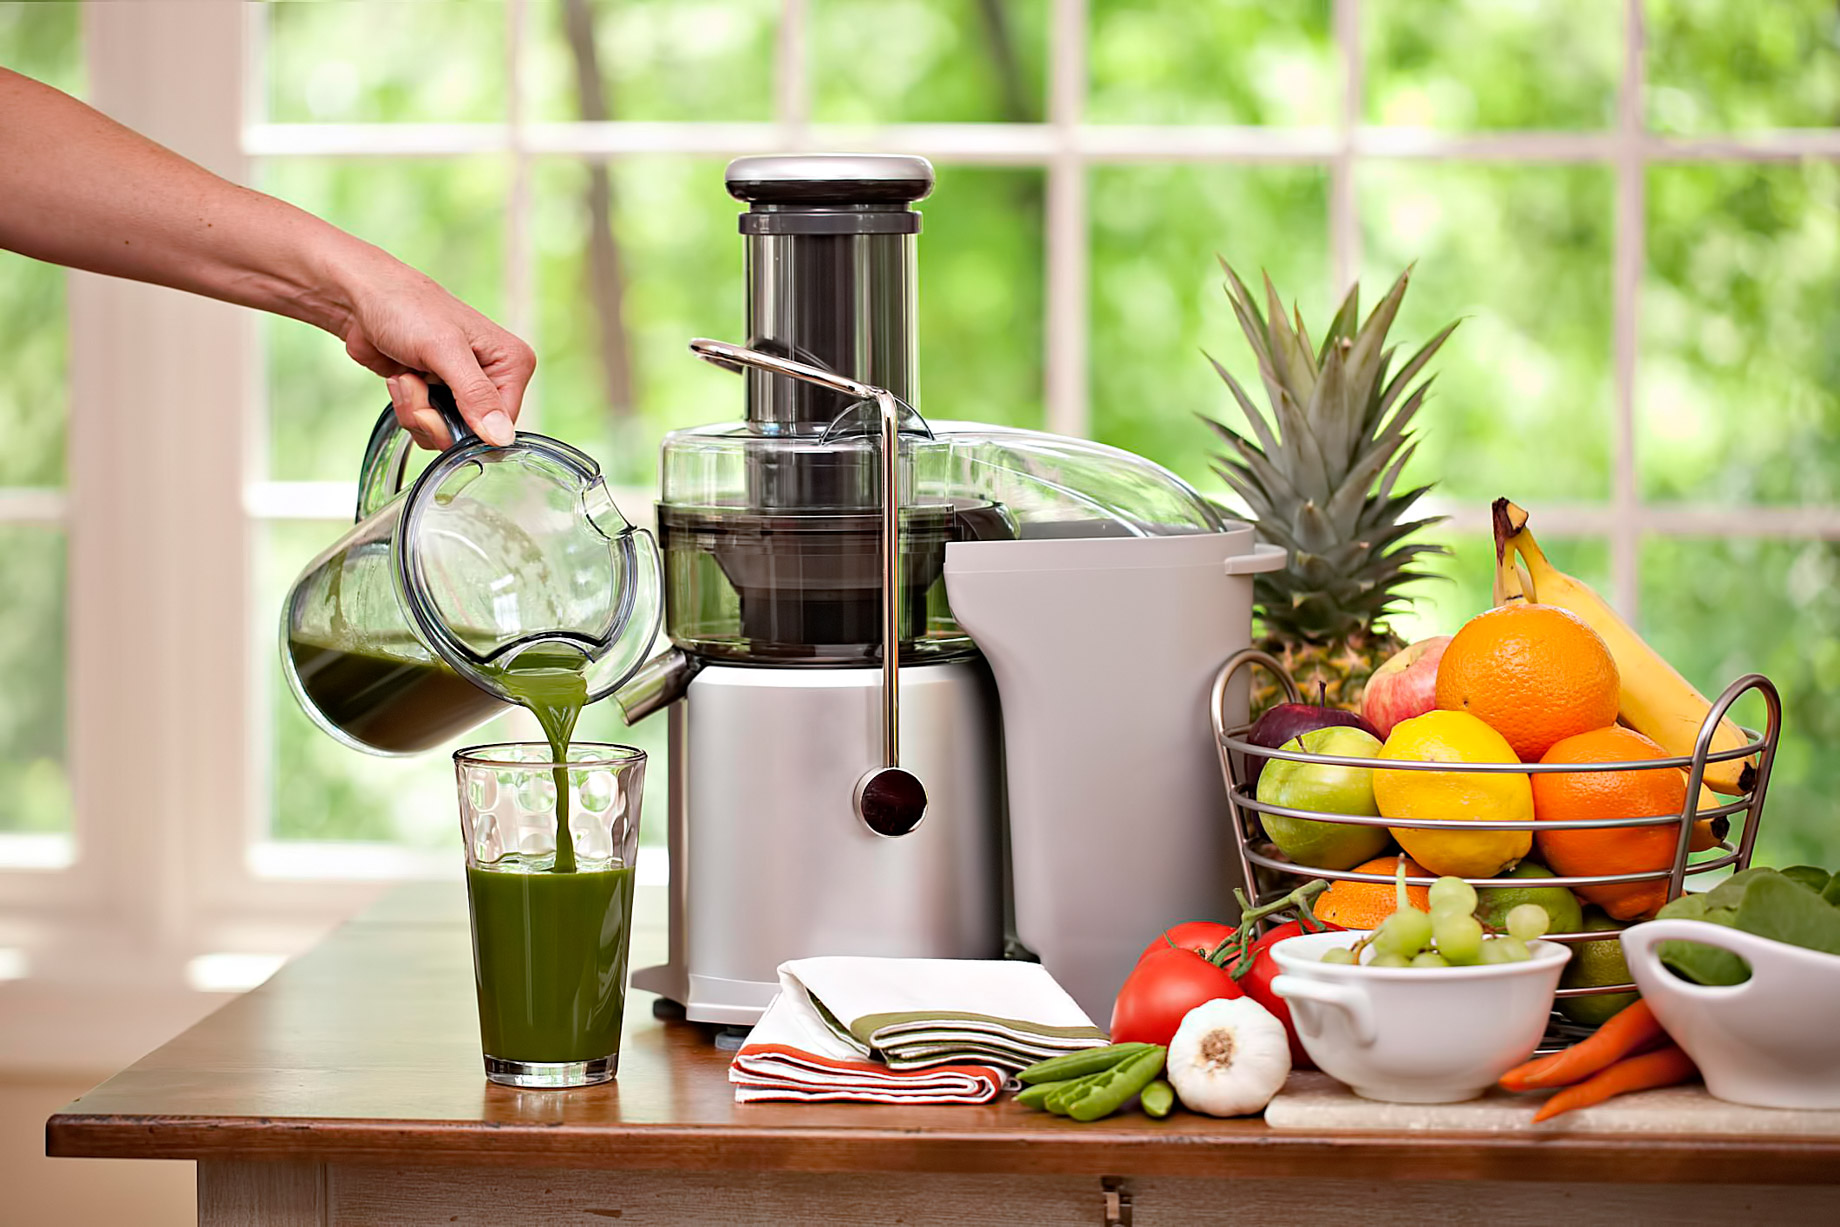 04 Juicer – New Home Trends – Ideal Luxury Products For Your House This Winter